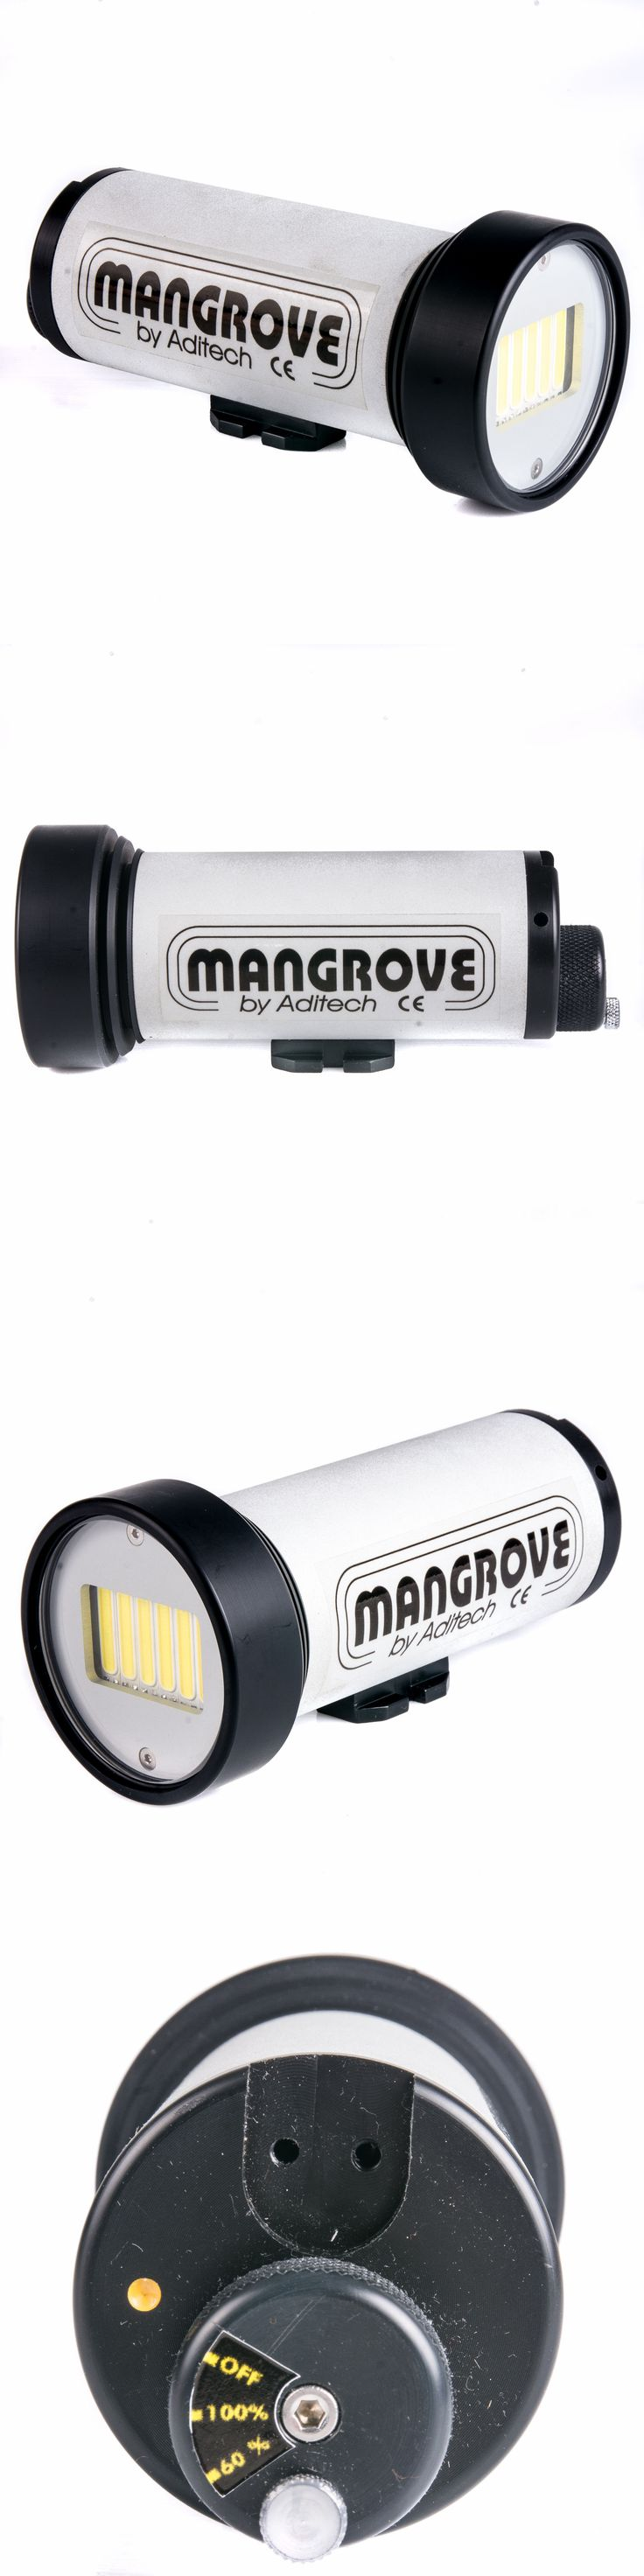 Lights 29575: Aditech Mangrove Videocompact Vc-2L6 Underwater Video Light -> BUY IT NOW ONLY: $199.95 on eBay!